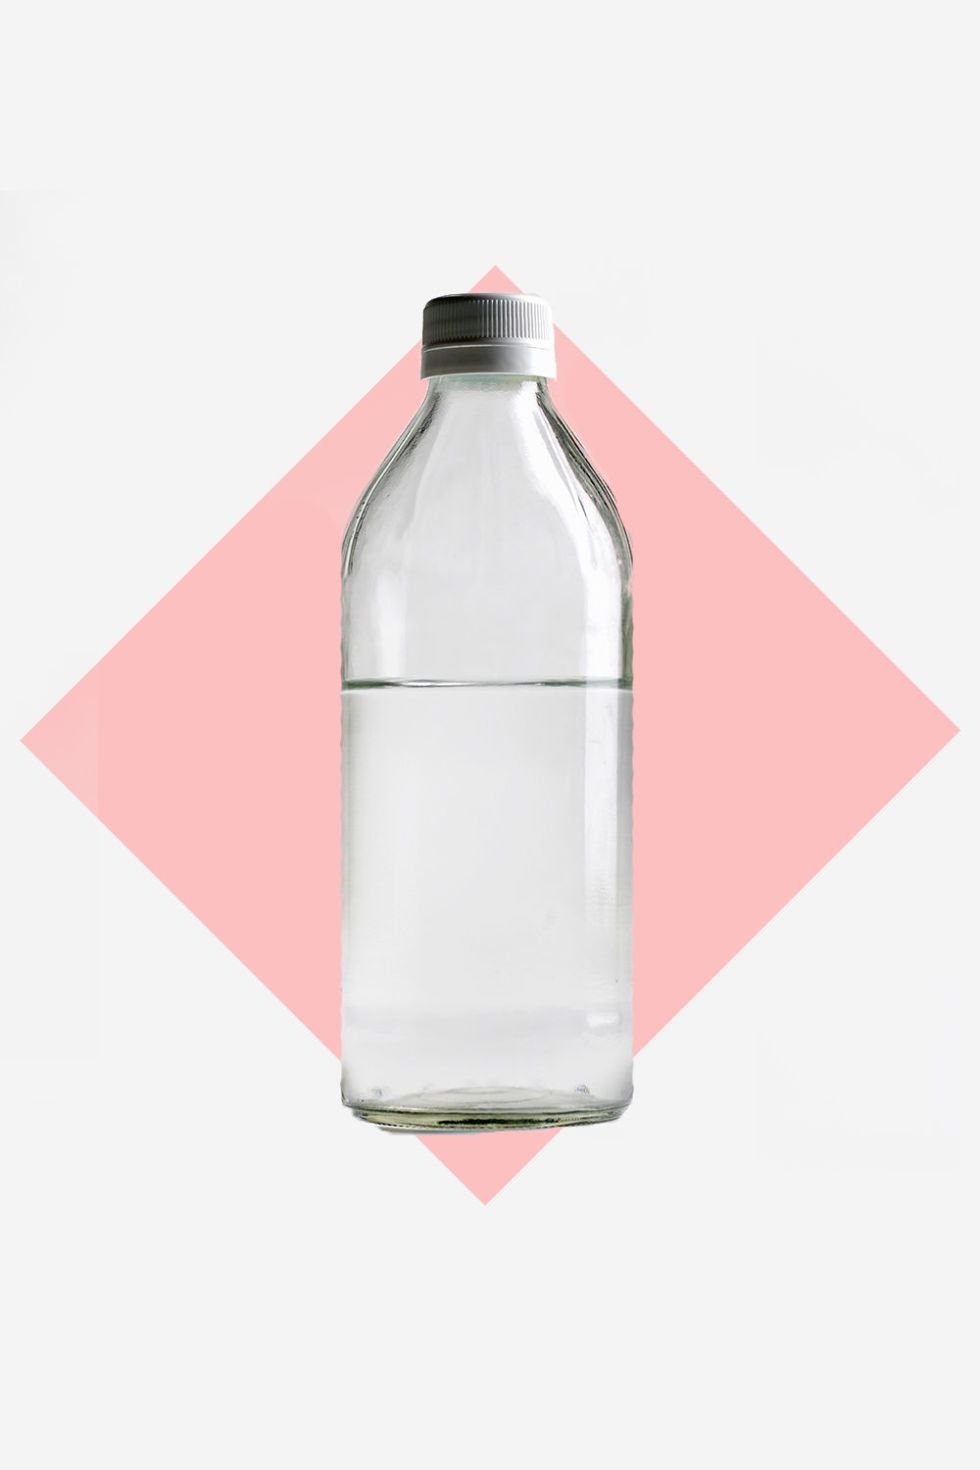 To Preserve Color  - MarieClaire.com 1/4 C. White Vinegar to 1/2 C. Purified Water